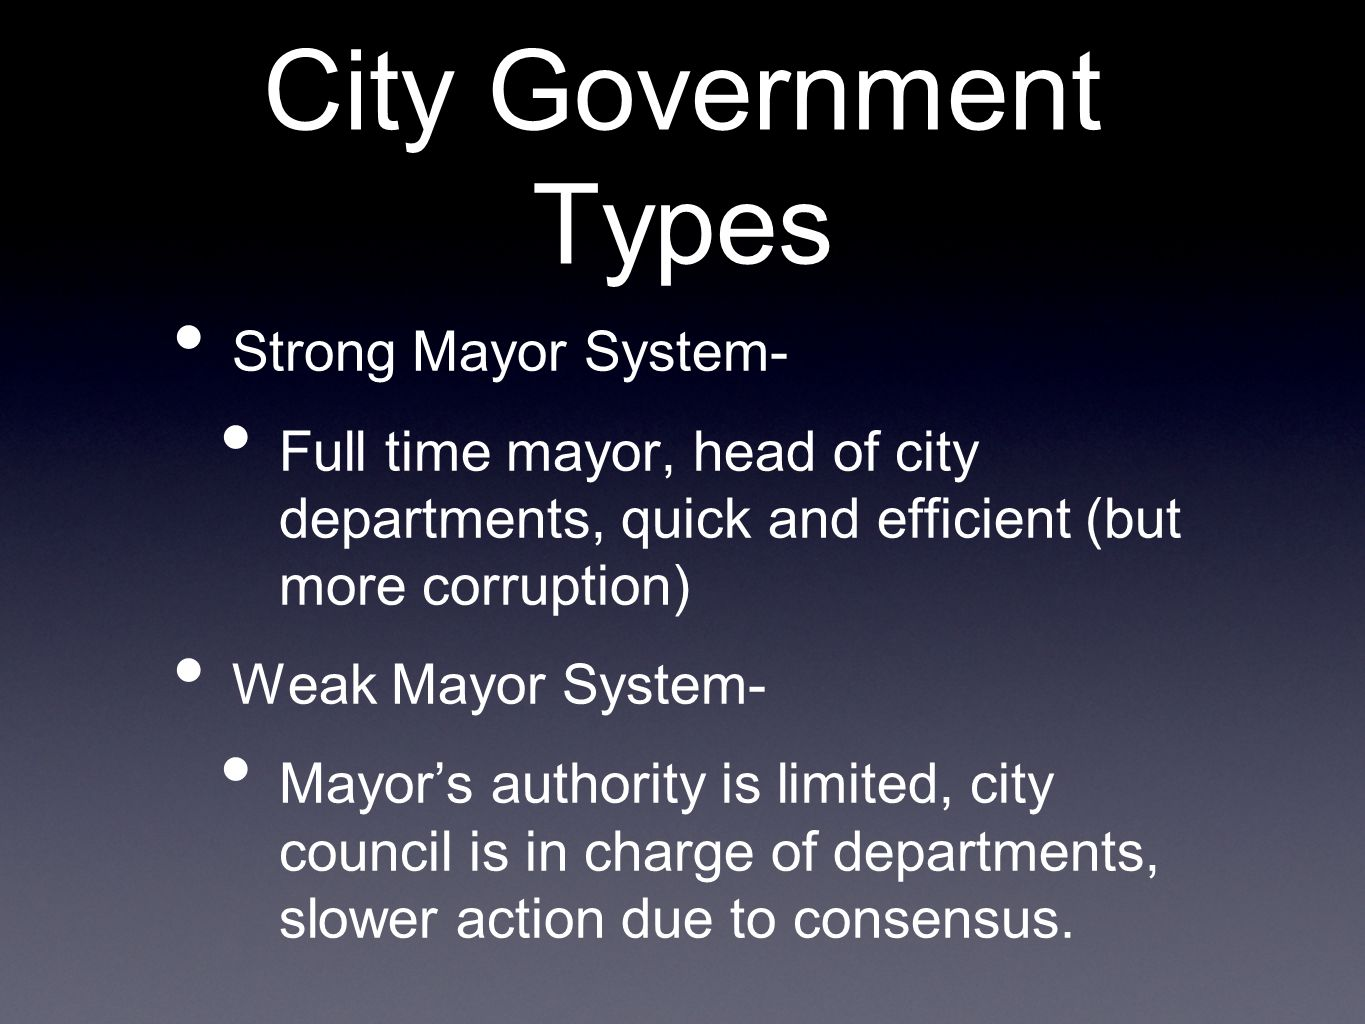 City Government Types Strong Mayor System- Full time mayor, head of city departments, quick and efficient (but more corruption) Weak Mayor System- Mayors authority is limited, city council is in charge of departments, slower action due to consensus.